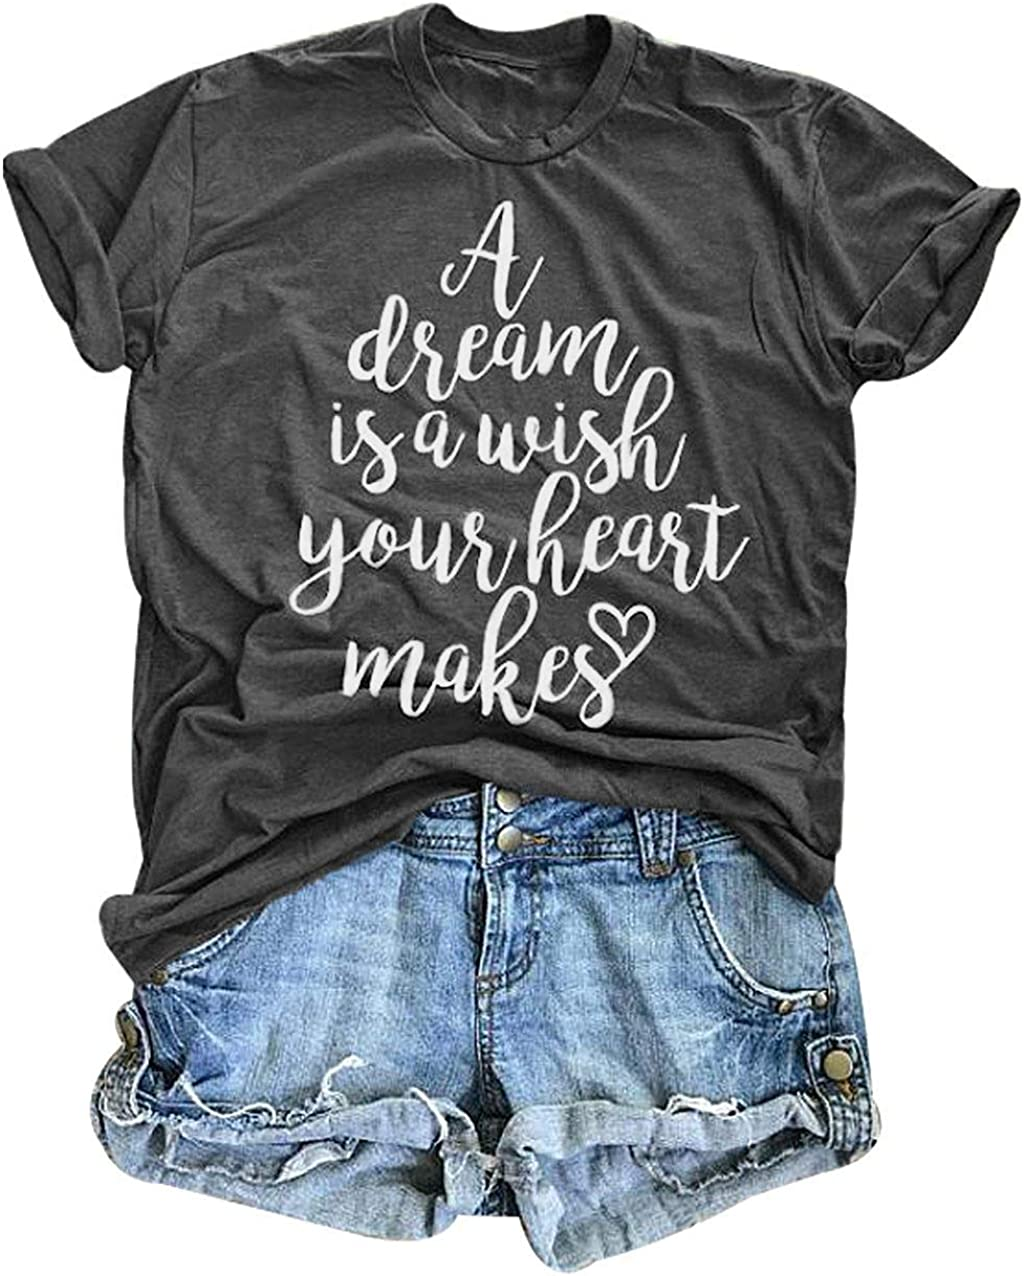 AEURPLT Womens Summer Funny Graphic Shirts Casual Vintage T Shirt Tops A Dream is A Wish Your Heart Makes Tees